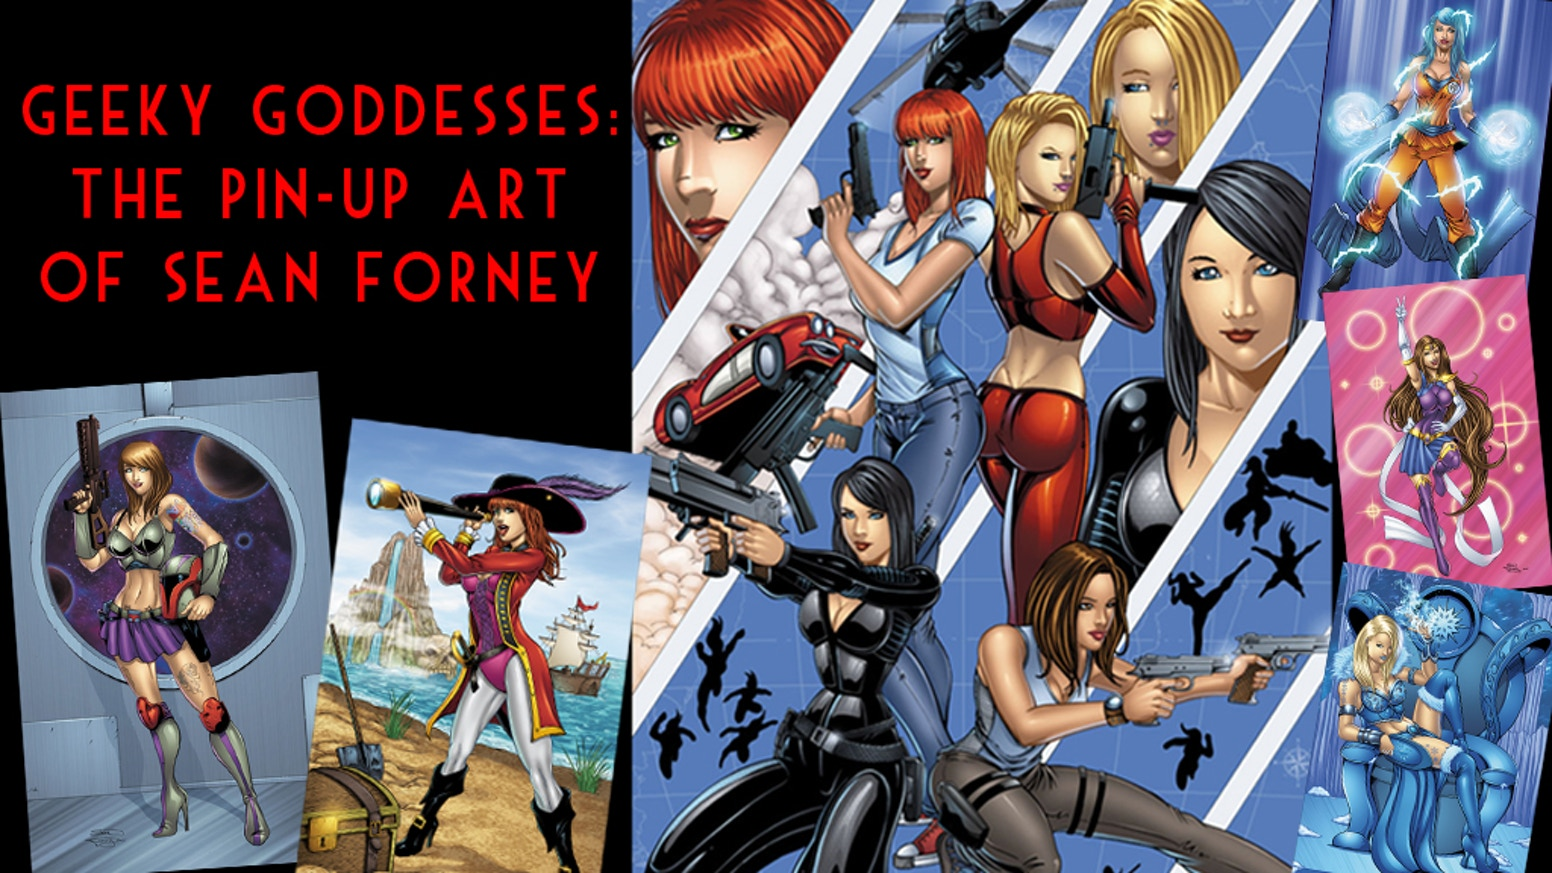 Geeky Goddess: The Pin-up Art of Sean Forney is a 48-page art book that showcases beautiful cosplay models as Geeky Goddesses.